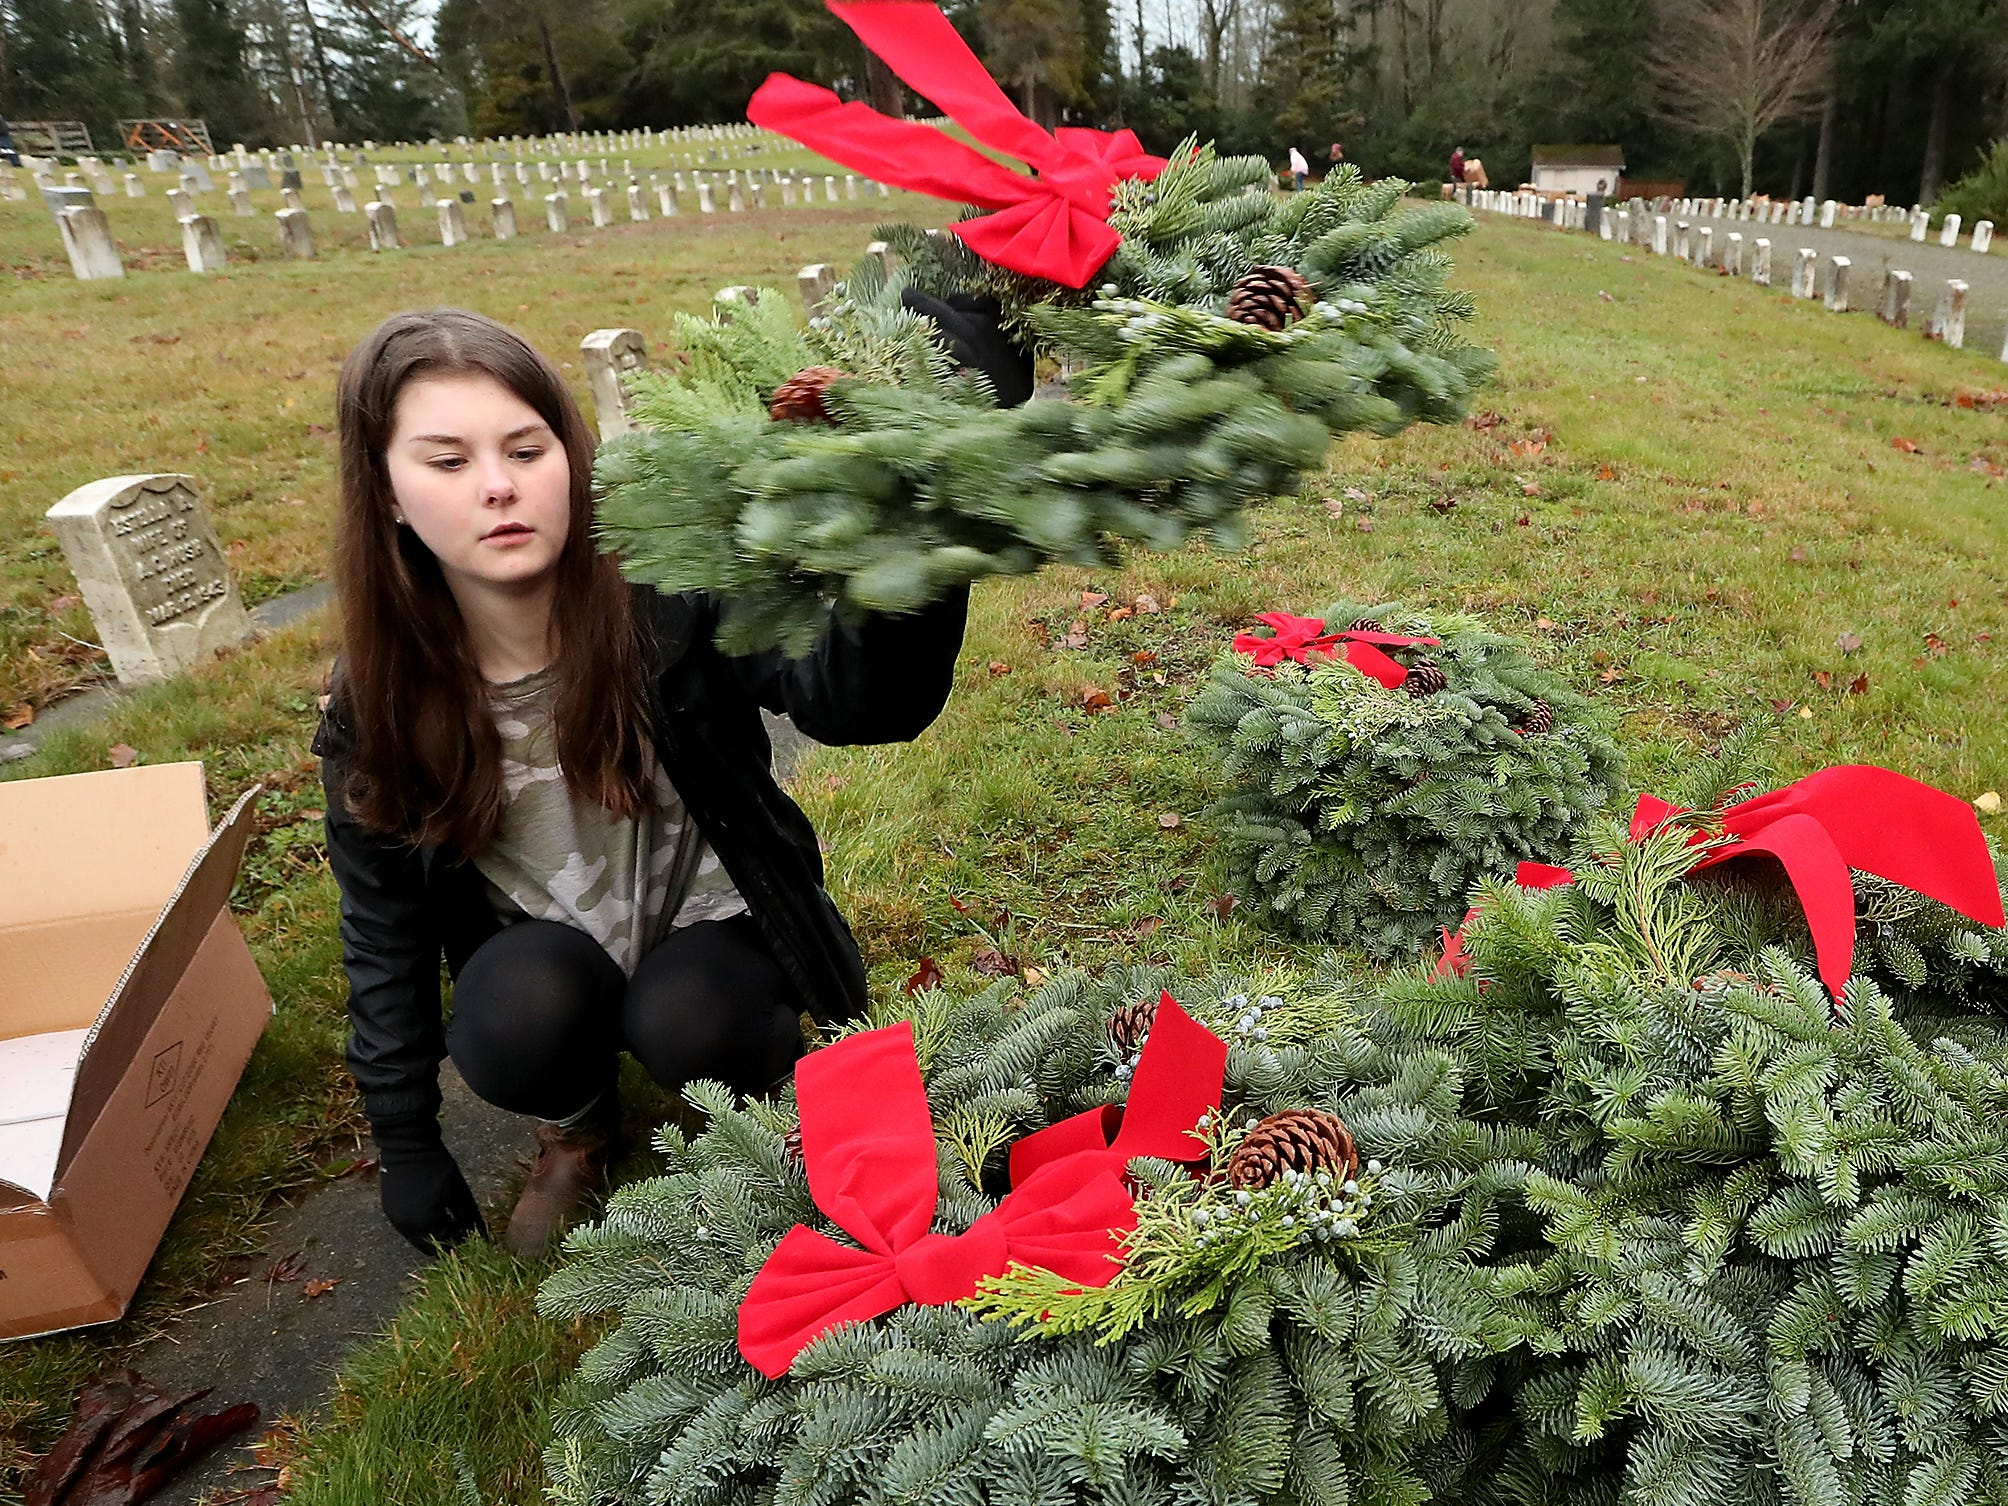 Volunteer Sydney Alexander places a wreath on the pile after affixing a bow to it as she and fellow volunteers get the wreaths ready for placement at the Washington Veterans Home Cemetery in Port Orchard on Saturday, December 15, 2018.